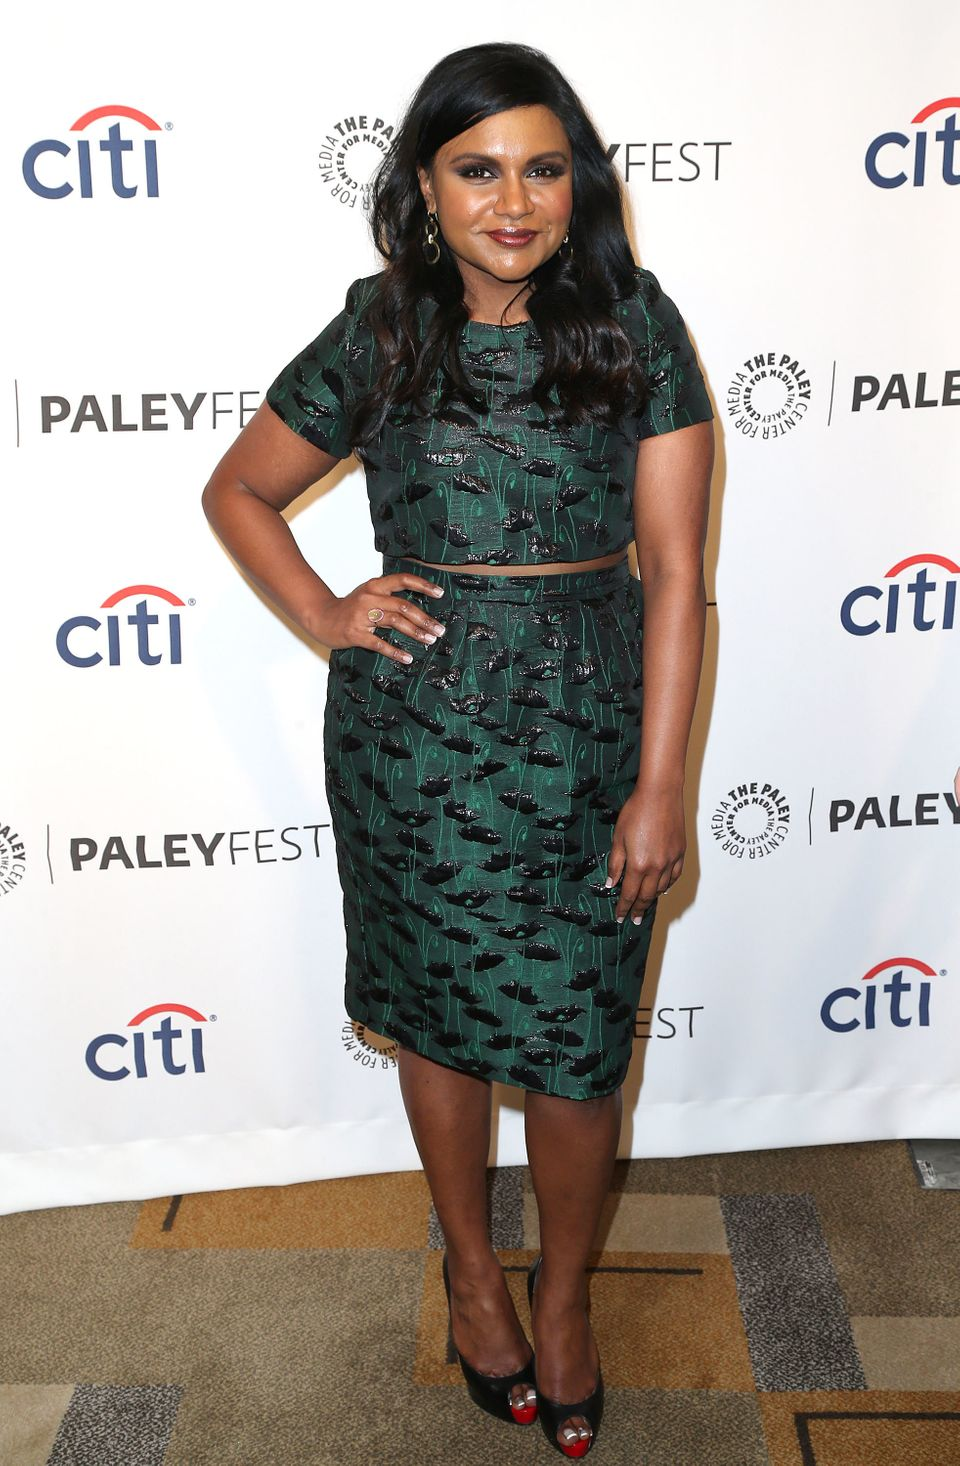 HOLLYWOOD, CA - MARCH 25: Executive Producer/Actress Mindy Kaling attends The Paley Center for Media's PaleyFest 2014 Honorin